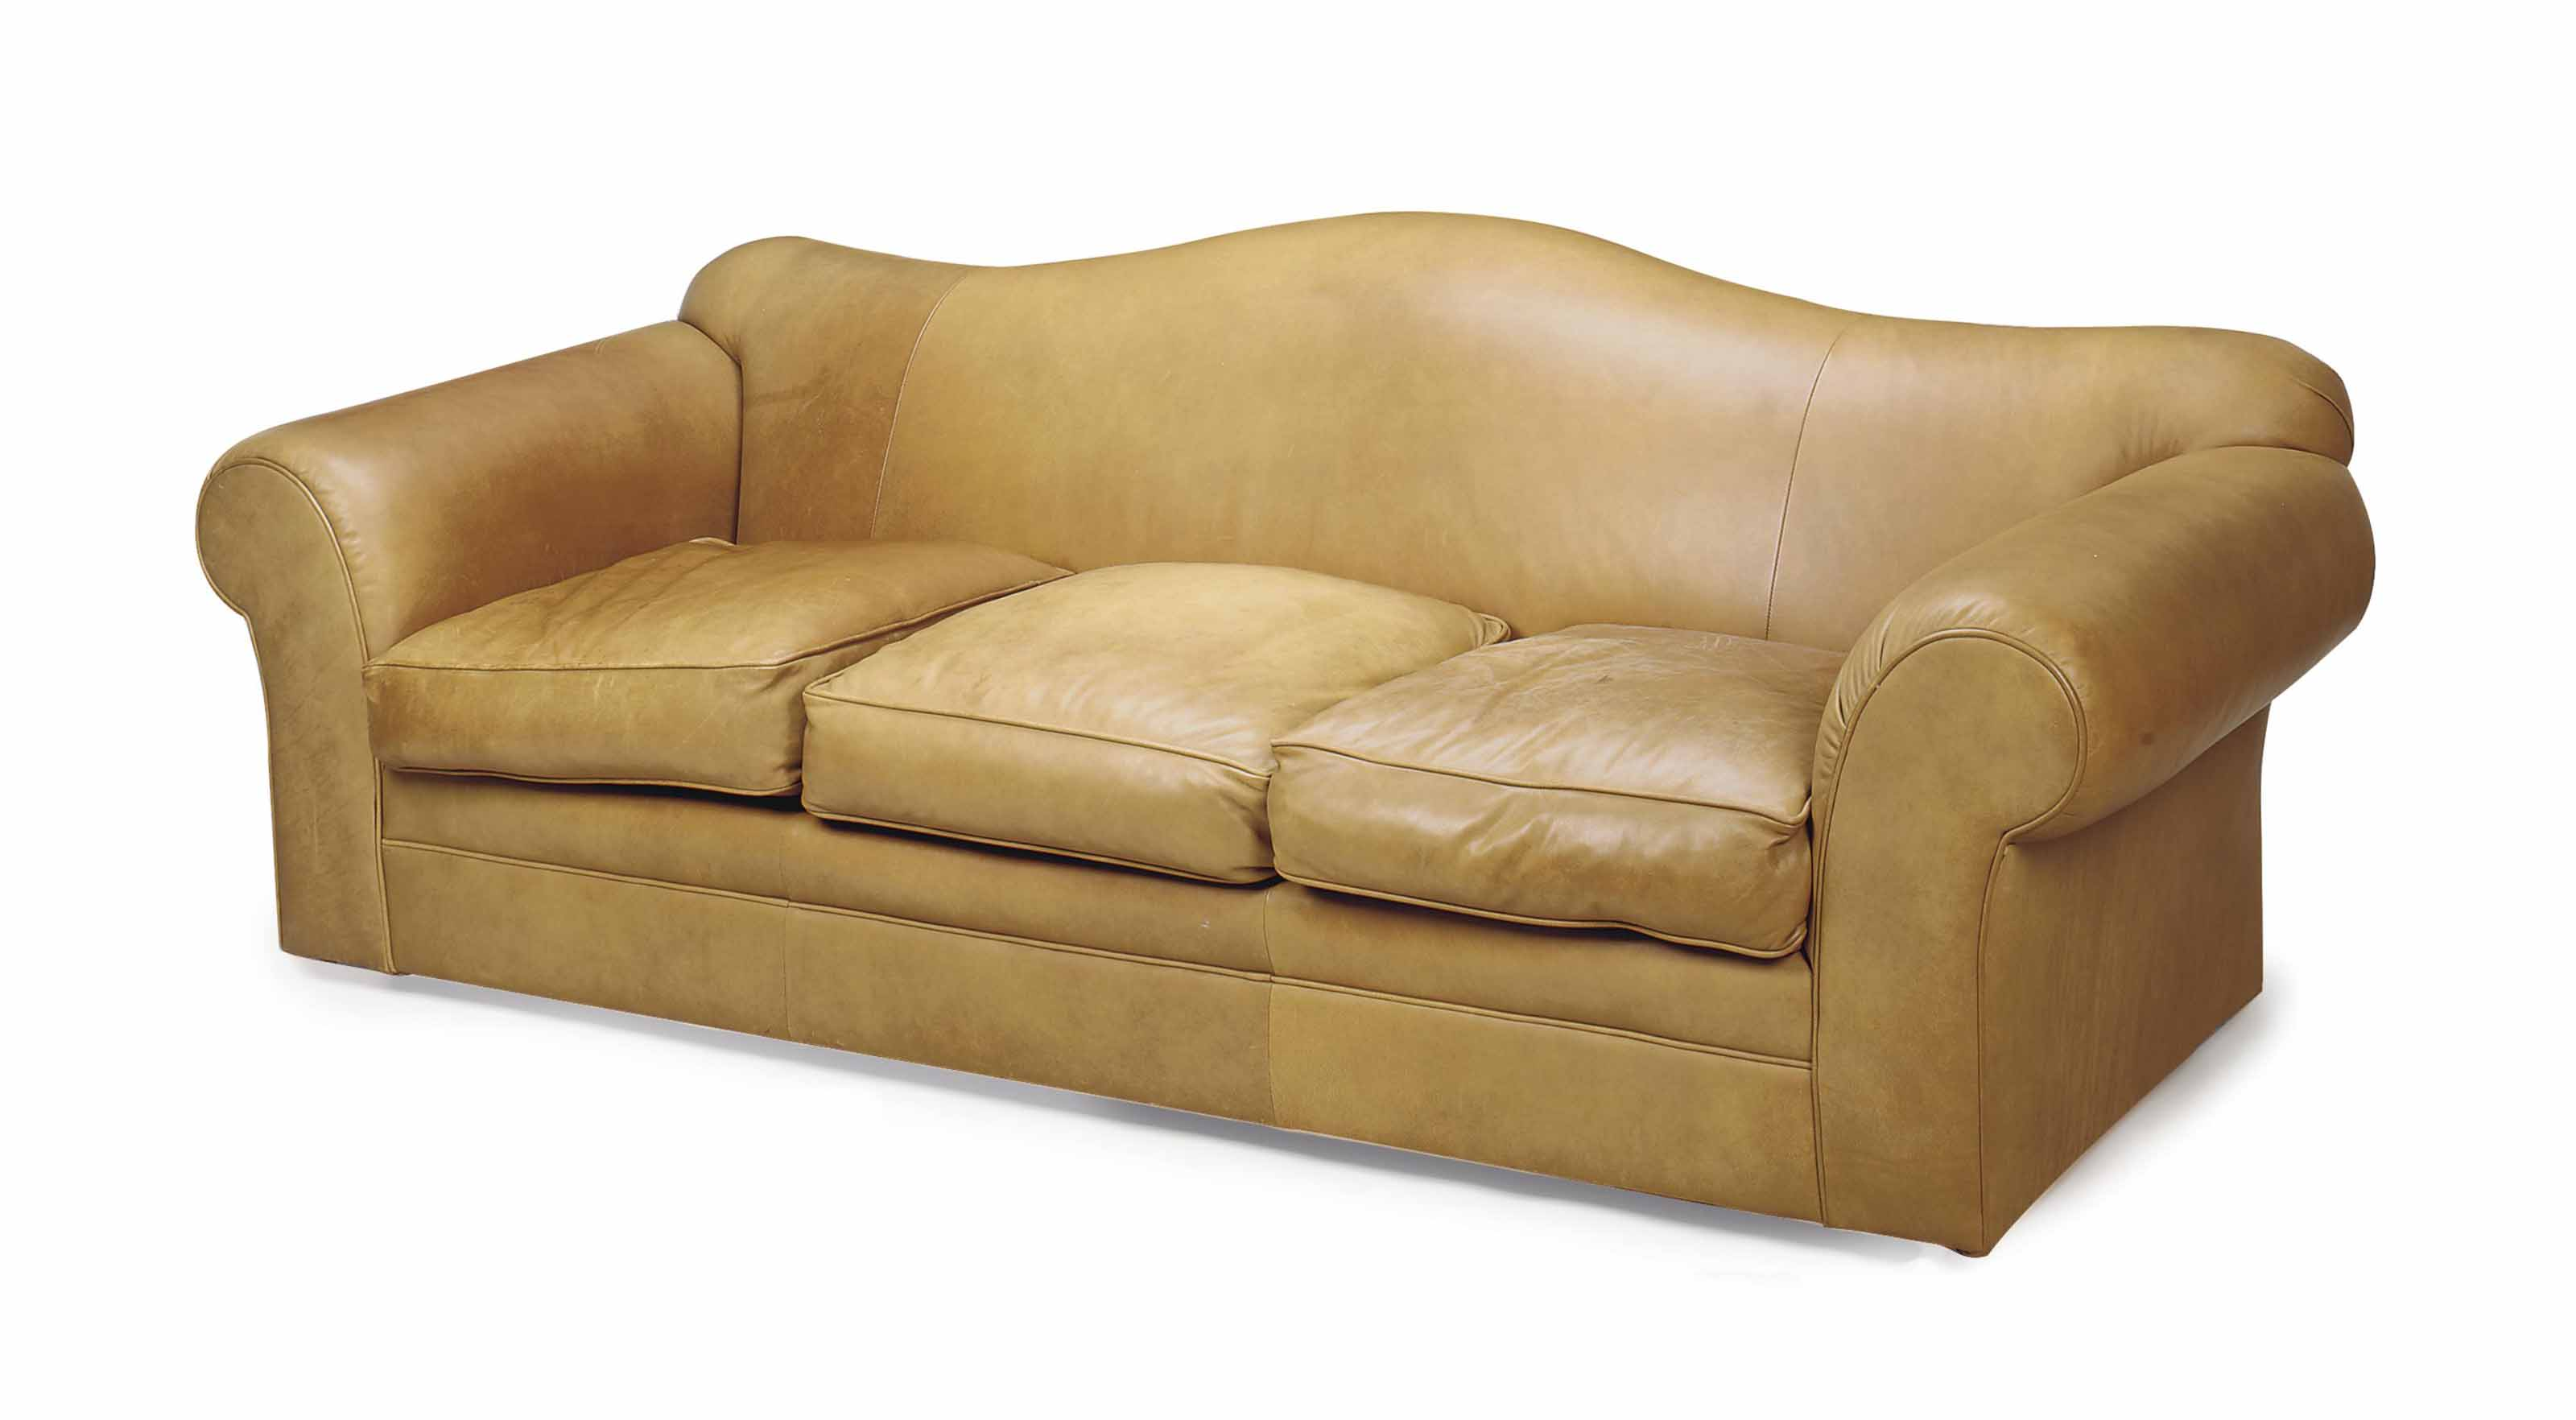 TWO LEATHER-UPHOLSTERED SOFAS,